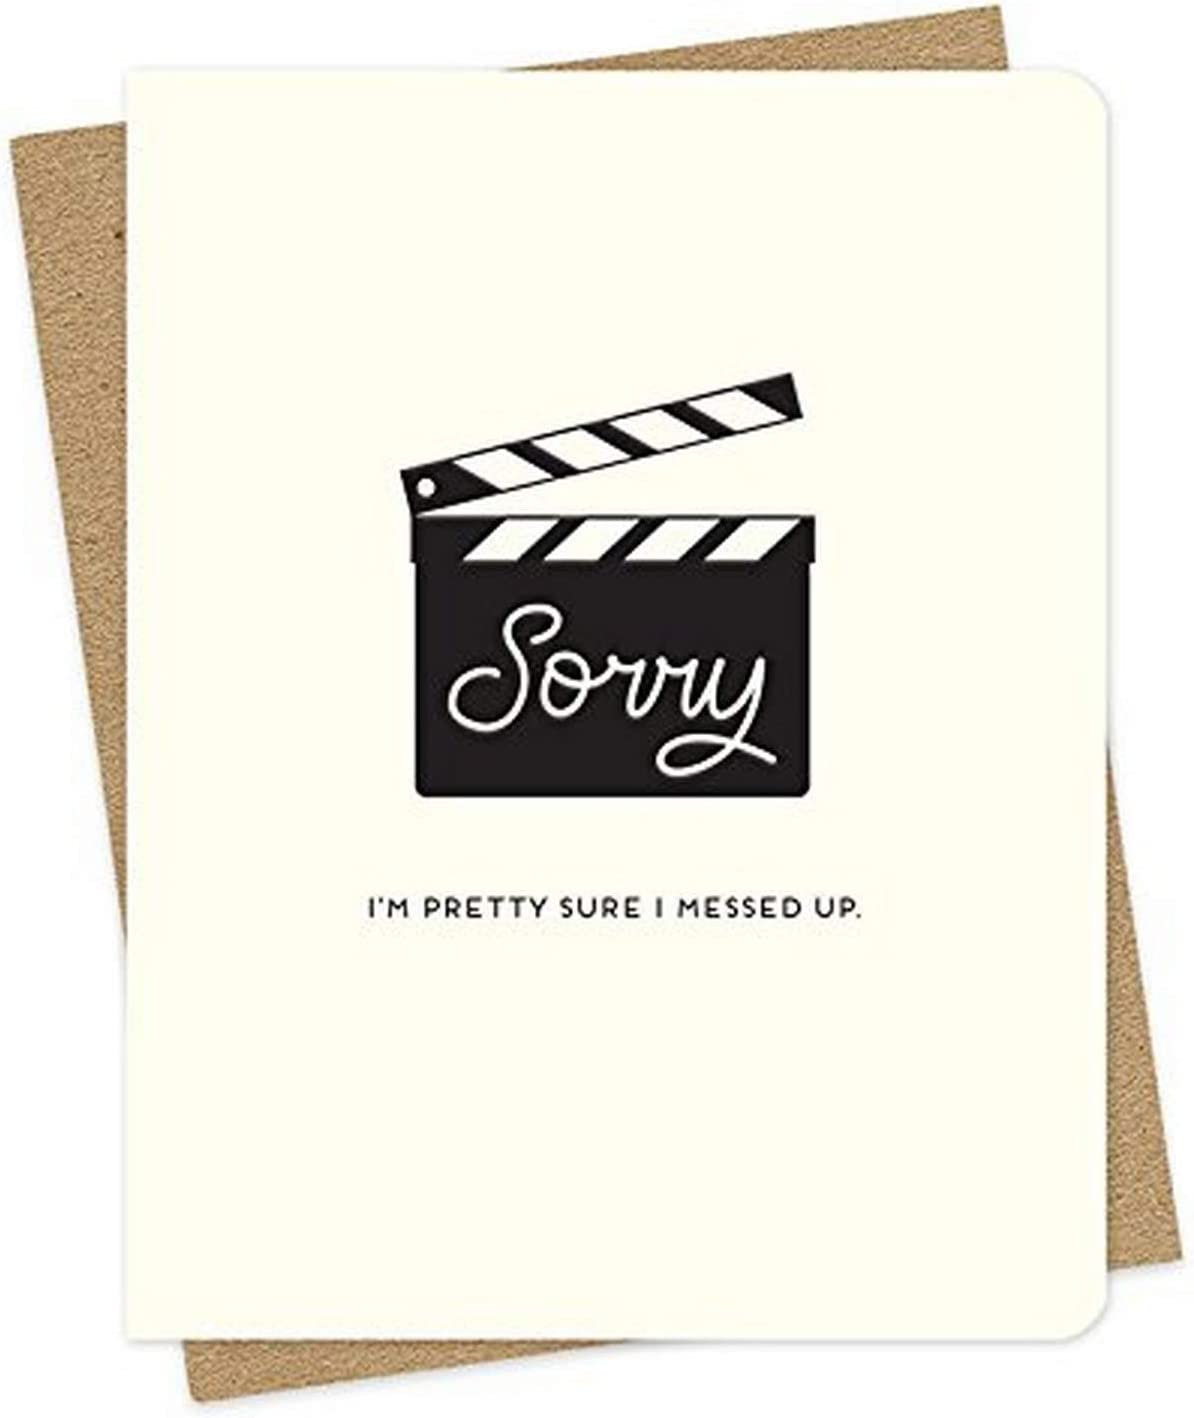 Take 2 Letterpress Apology Card by Night Owl Paper Goods